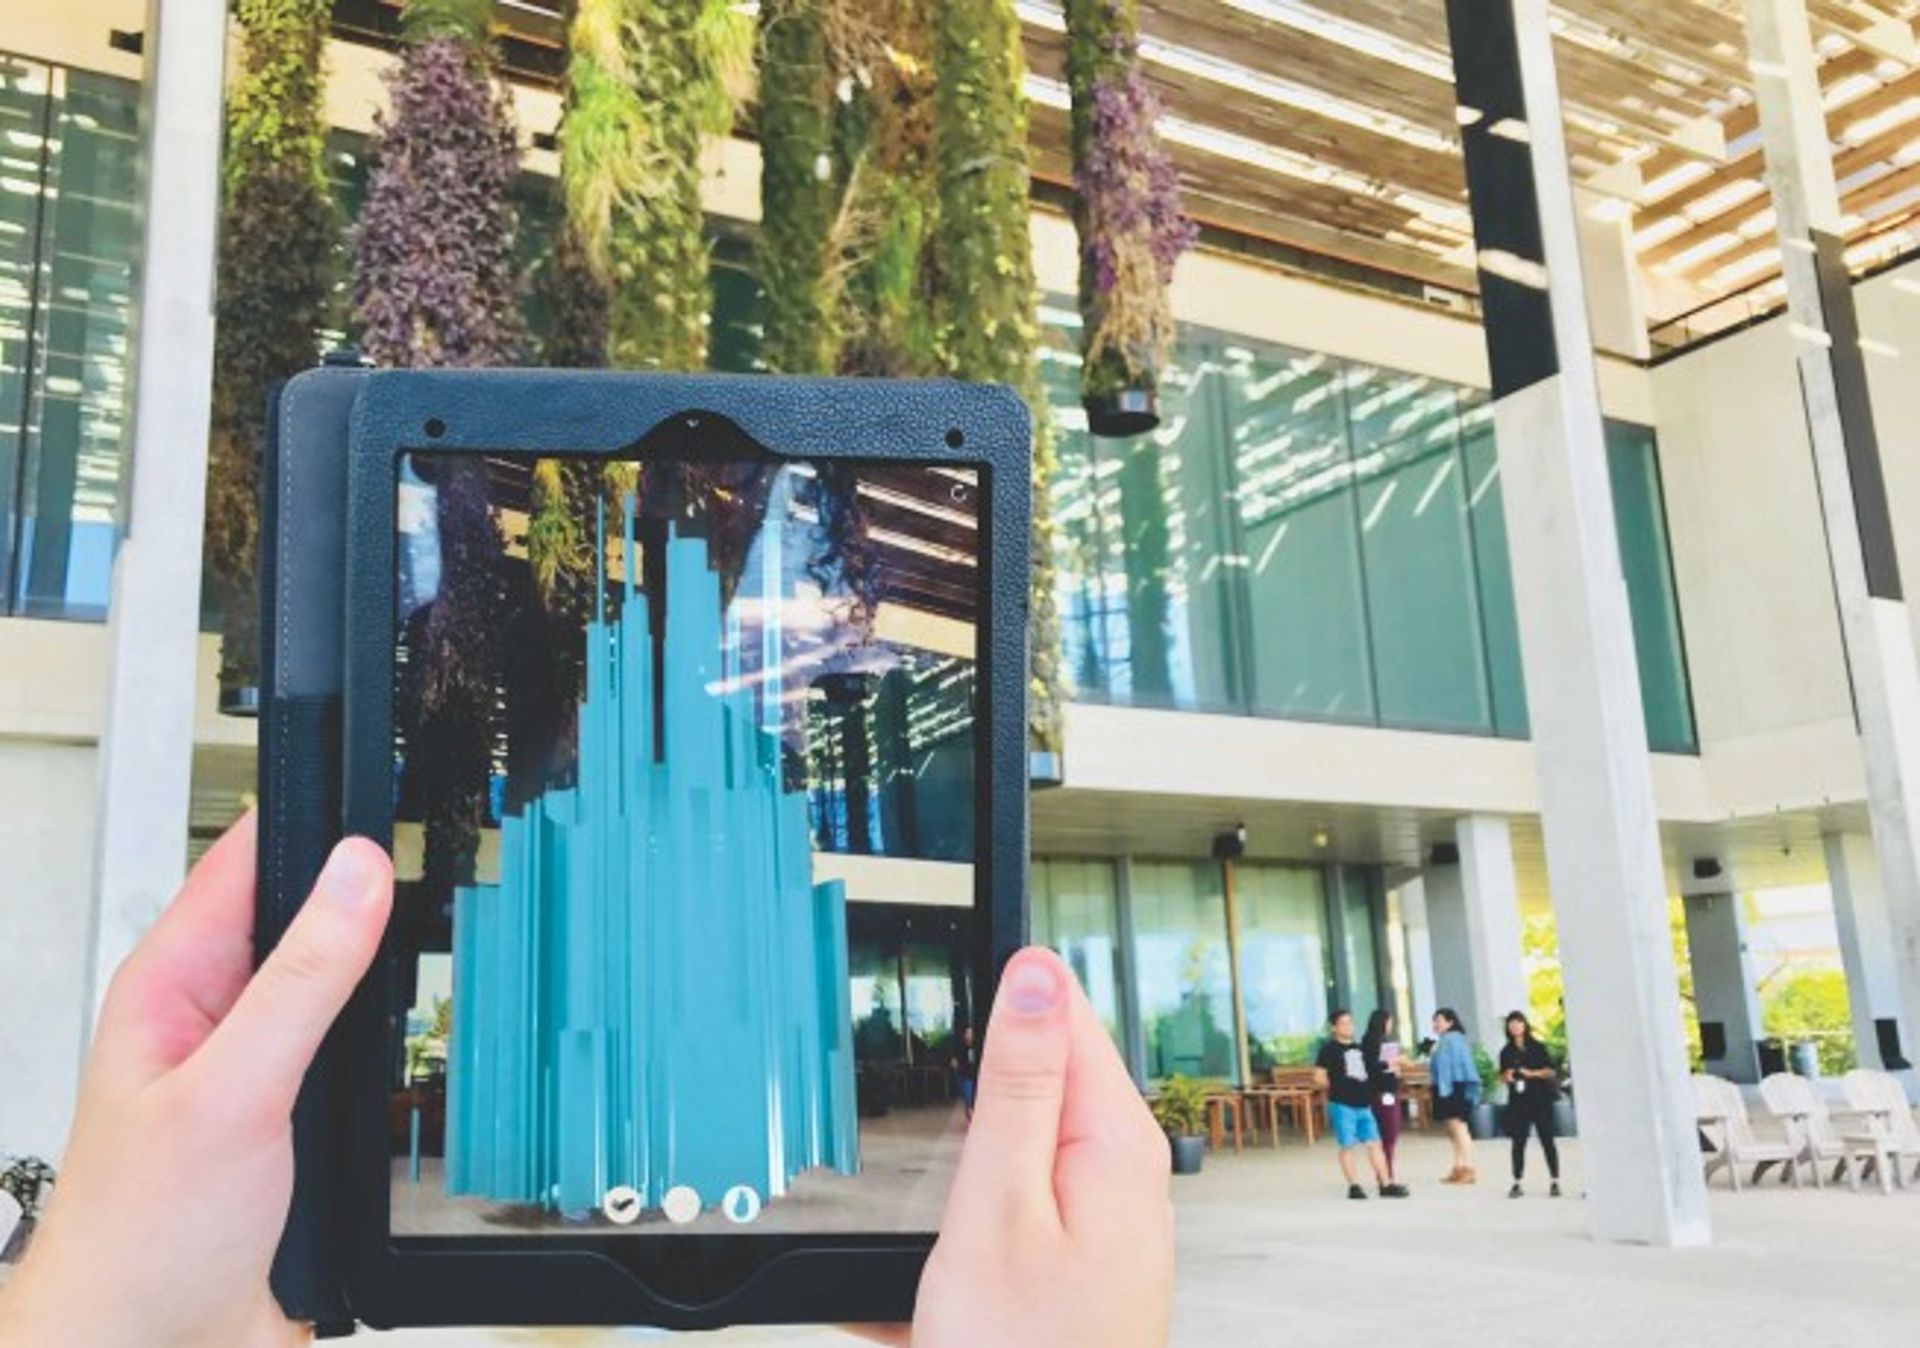 While artists have been experimenting with augmented reality for years, as seen in Felice Grodin's 2017 Invasive Species installation in Miami, dealers are also using the technology to sell to collectors. Courtesy of Felice Grodin and the Pérez Art Museum Miami